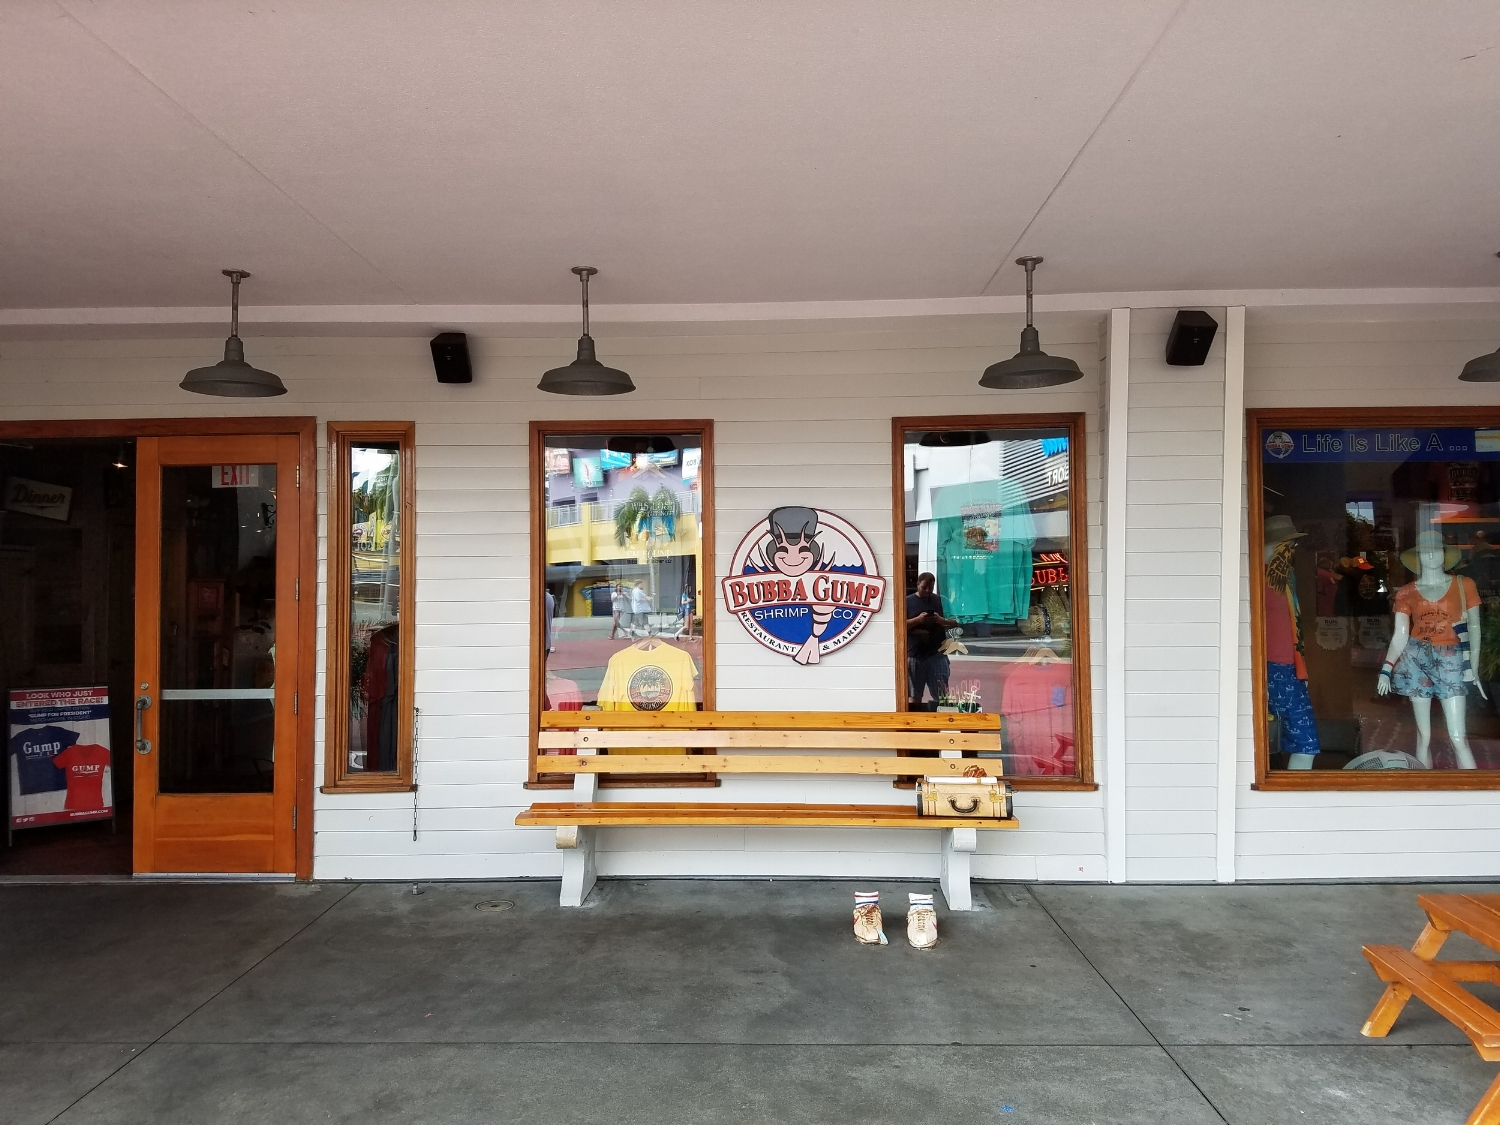 Bubba Gump Photo Op